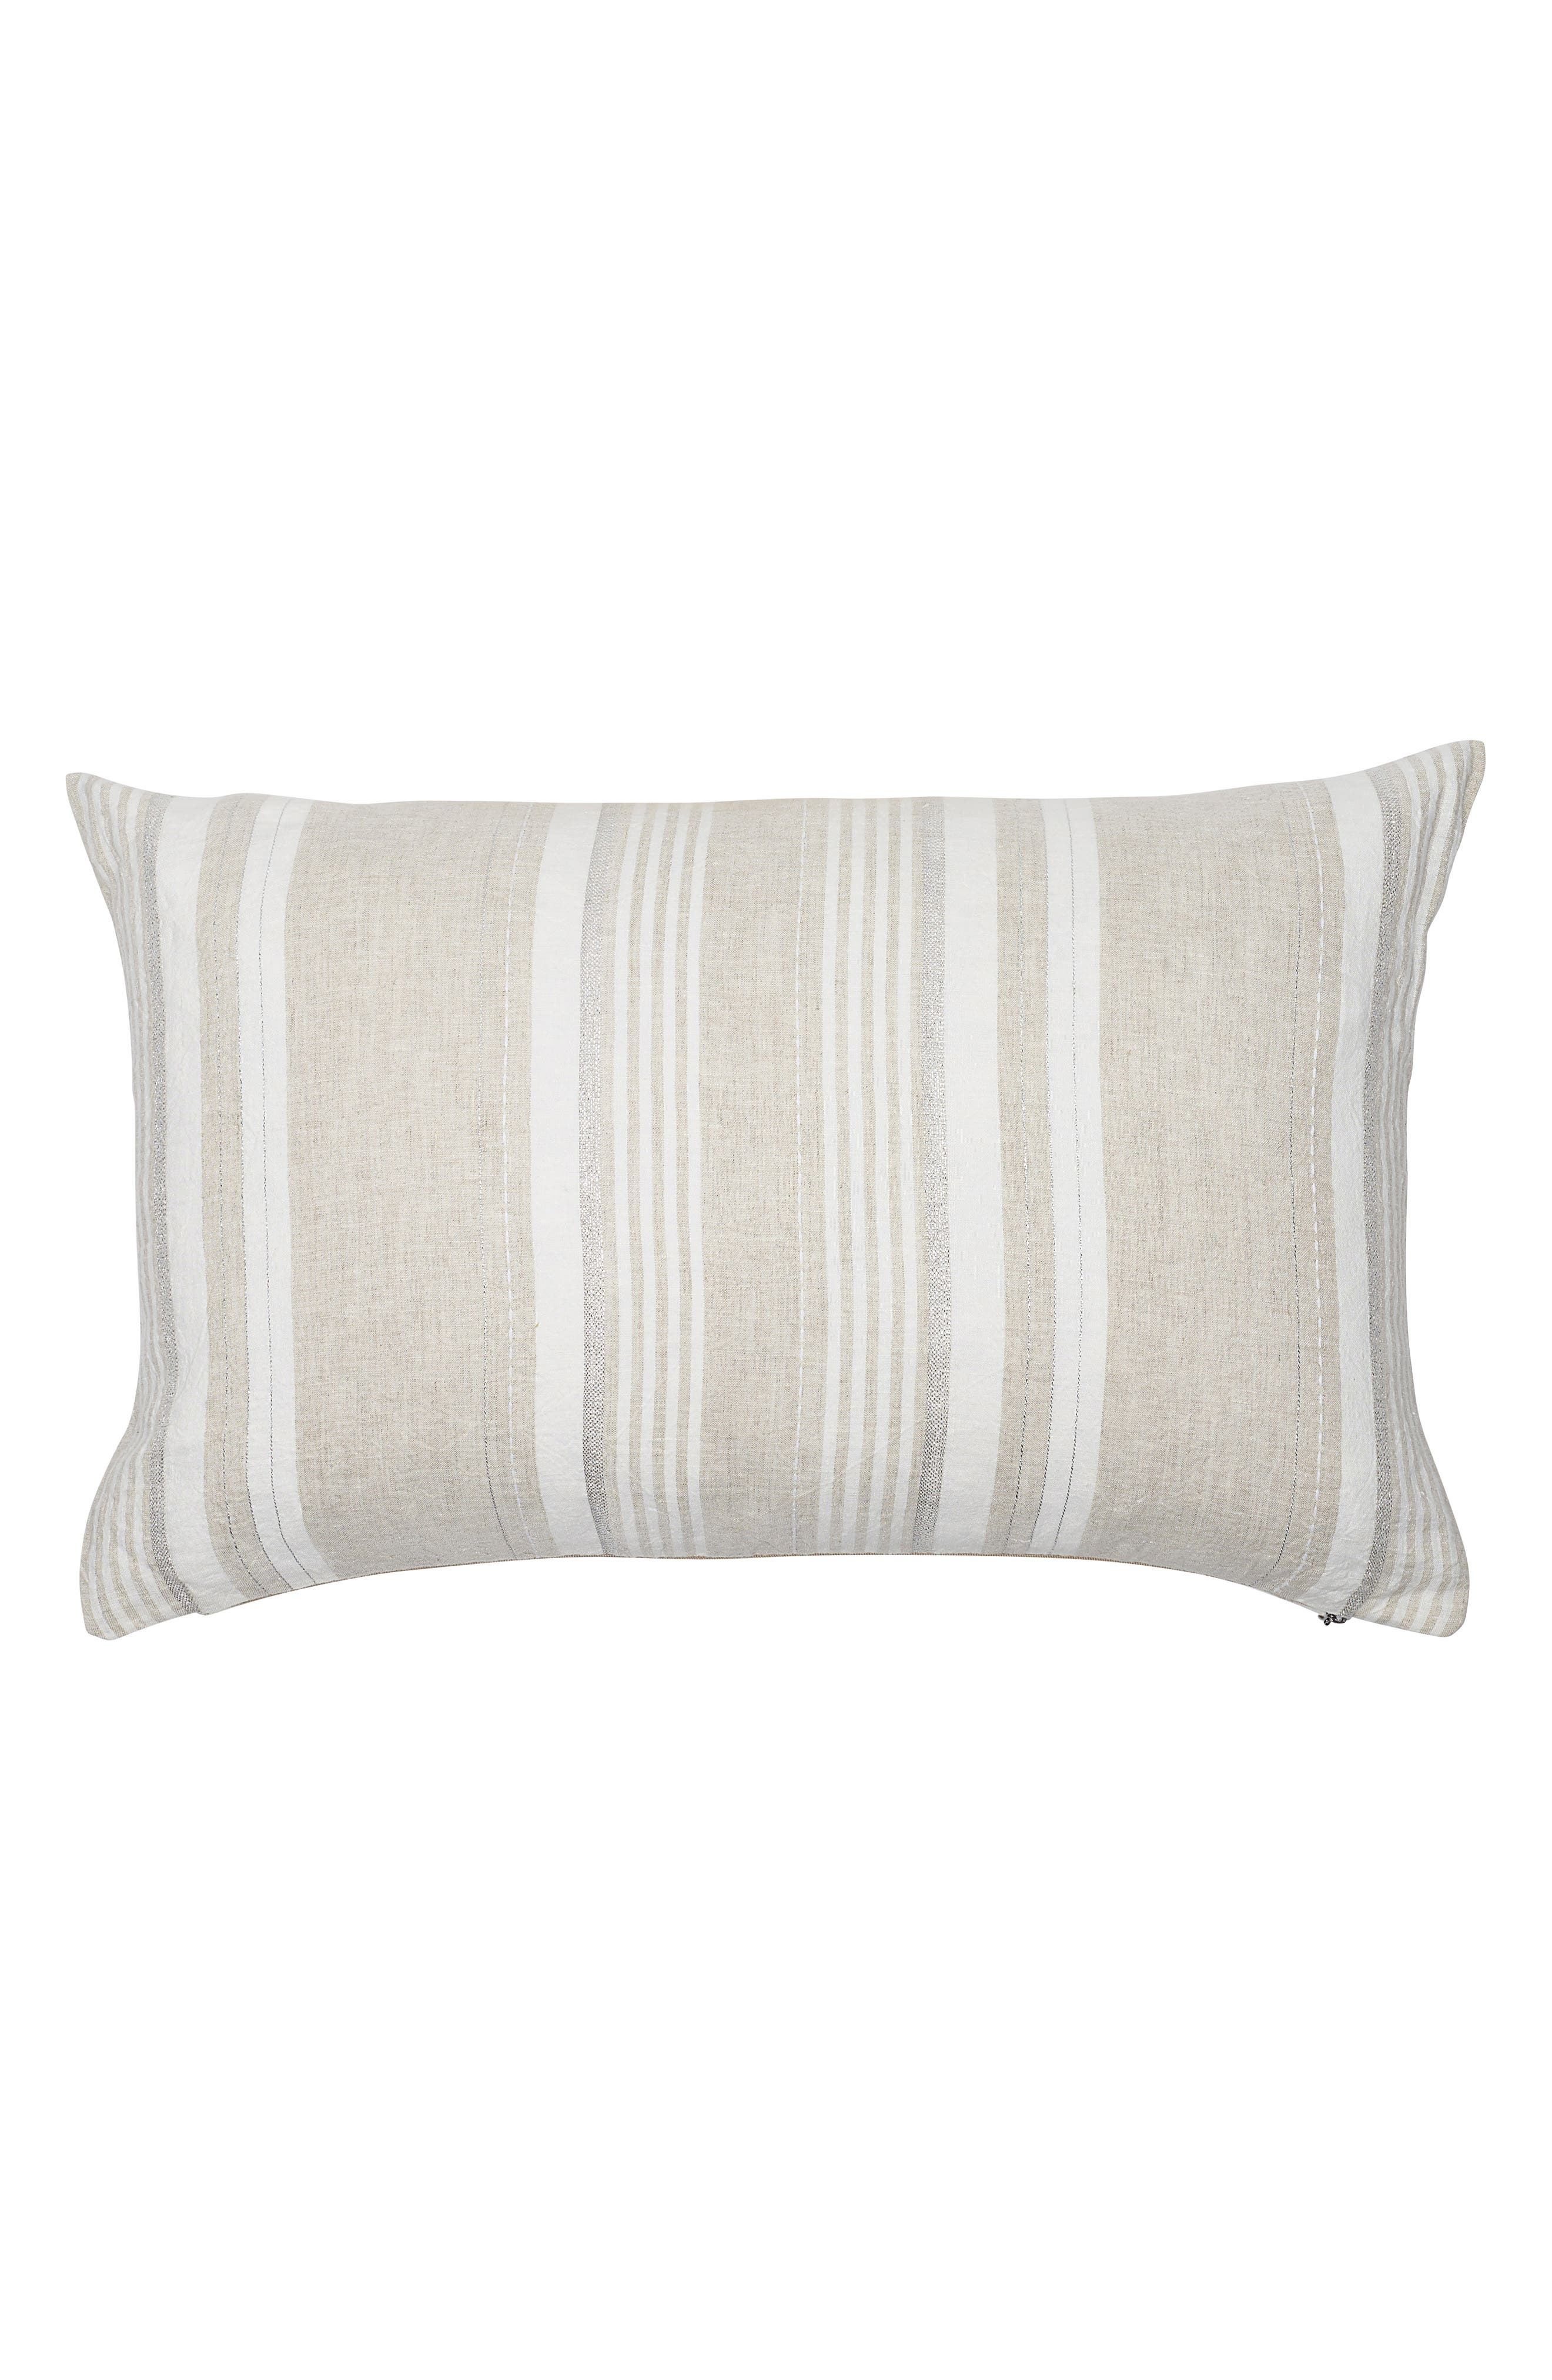 EADIE LIFESTYLE, Dew Drop Scatter Accent Pillow, Main thumbnail 1, color, NATURAL/ WHITE